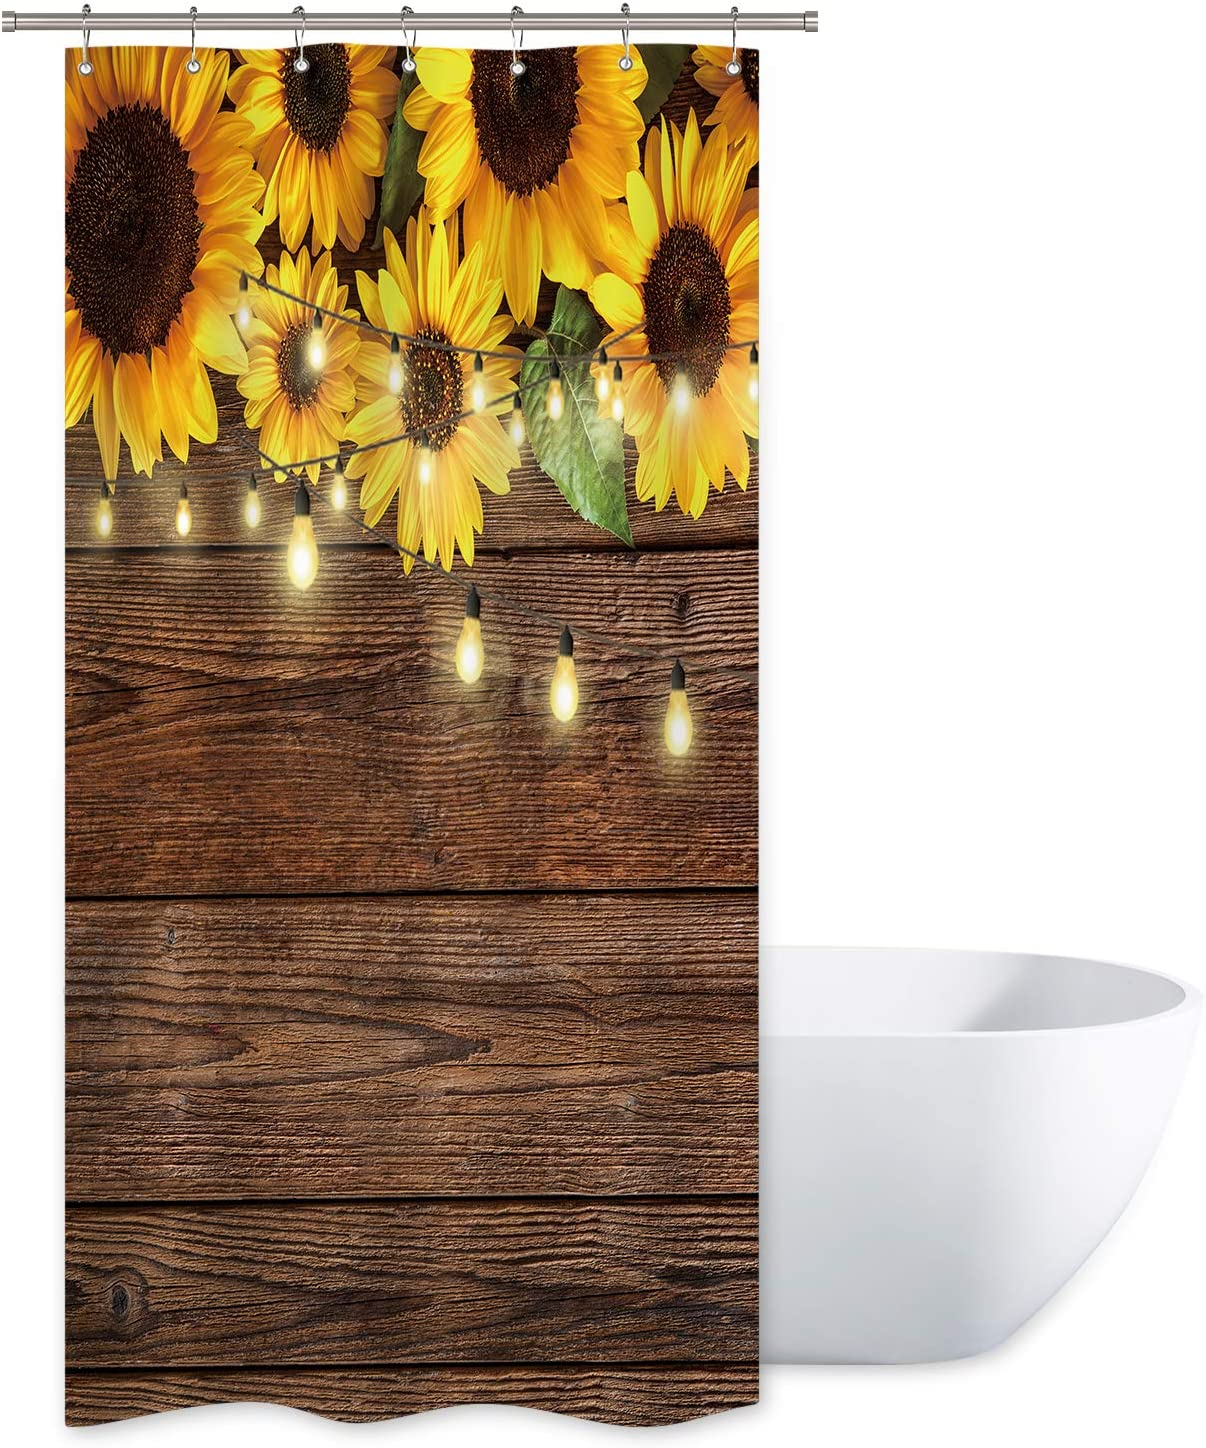 Riyidecor Rustic Sunflowers Wooden Board Light Shower Curtain Brown Yellow Country Spring Flowers Vintage Plant Kids Decor Fabric Nature Bathroom Polyester 36x72 Inch Include Plastic 7 Pack Hooks